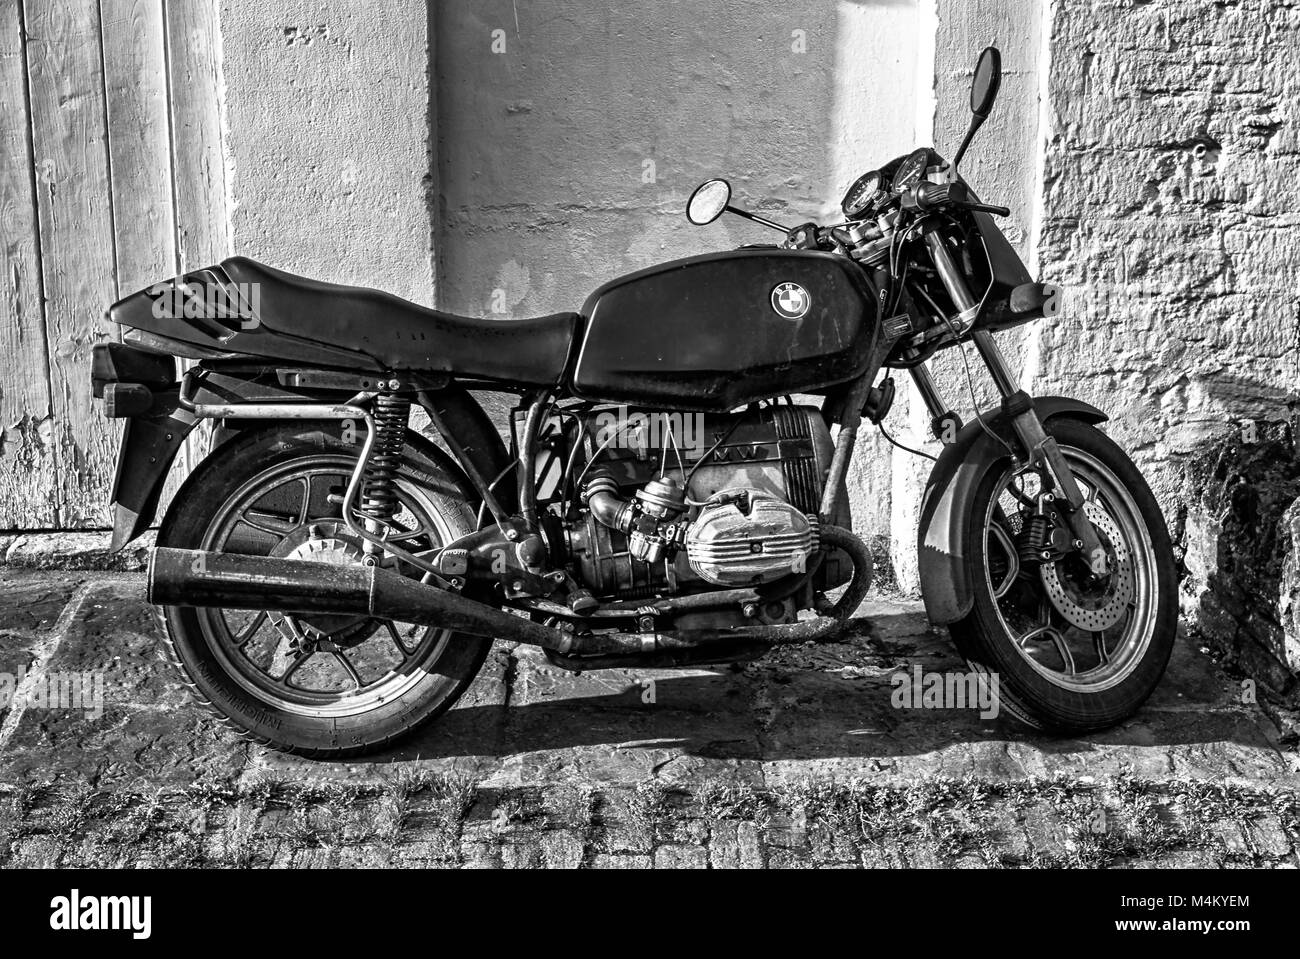 Old BMW motorcycle parked on its stand. - Stock Image